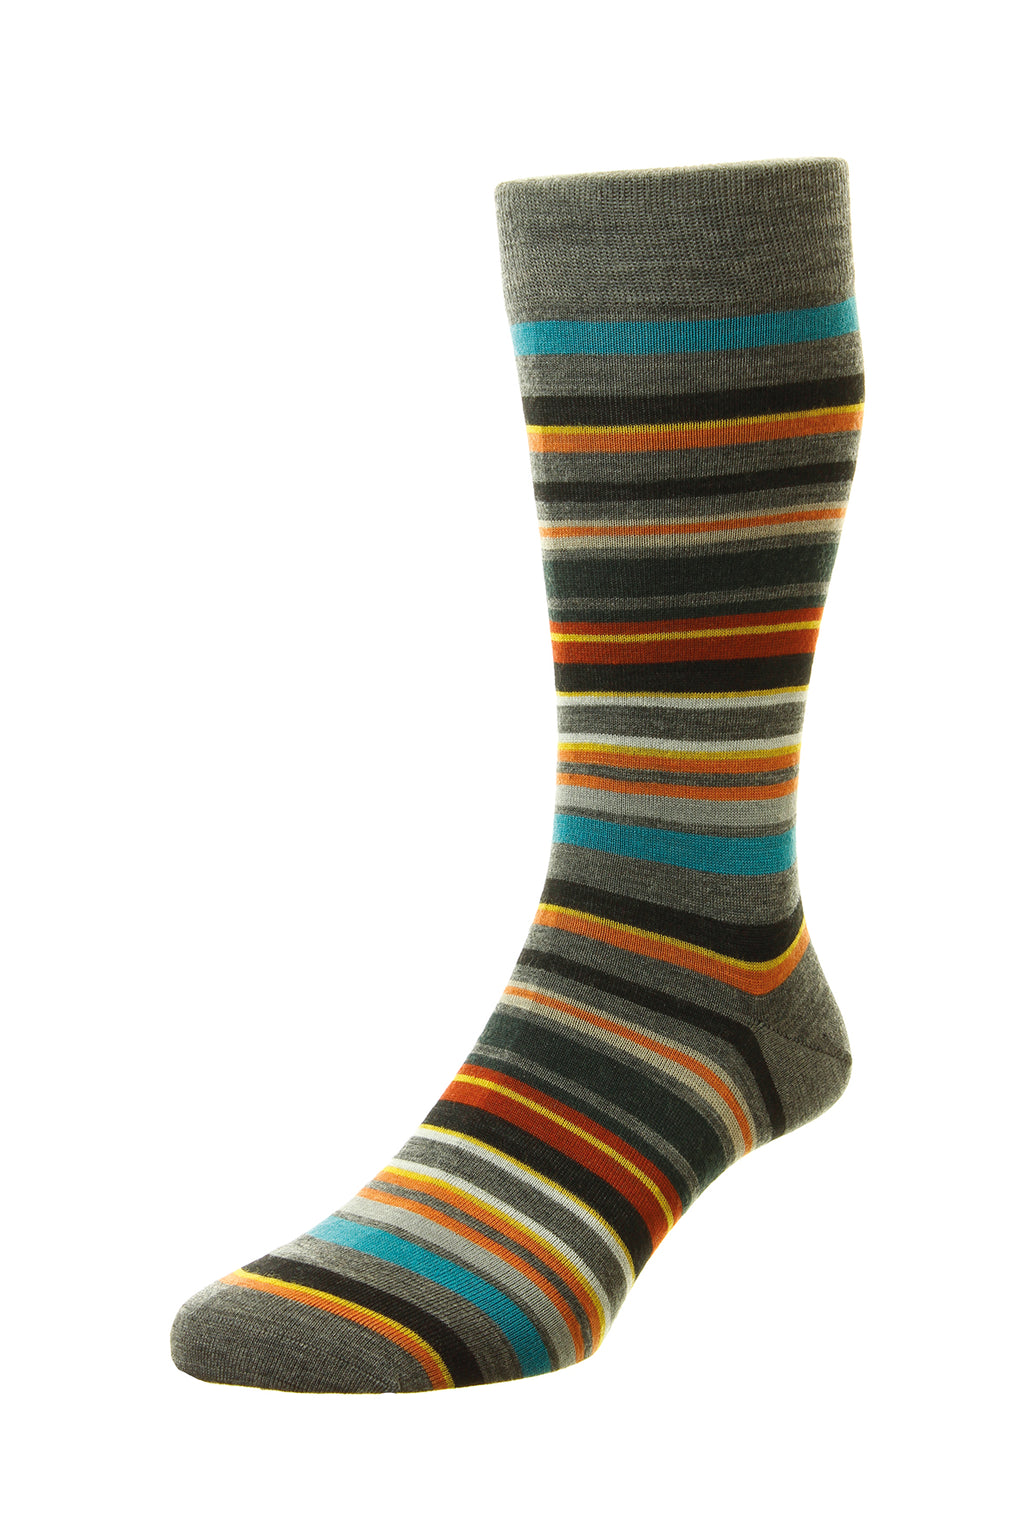 Quakers Men's Wool Socks